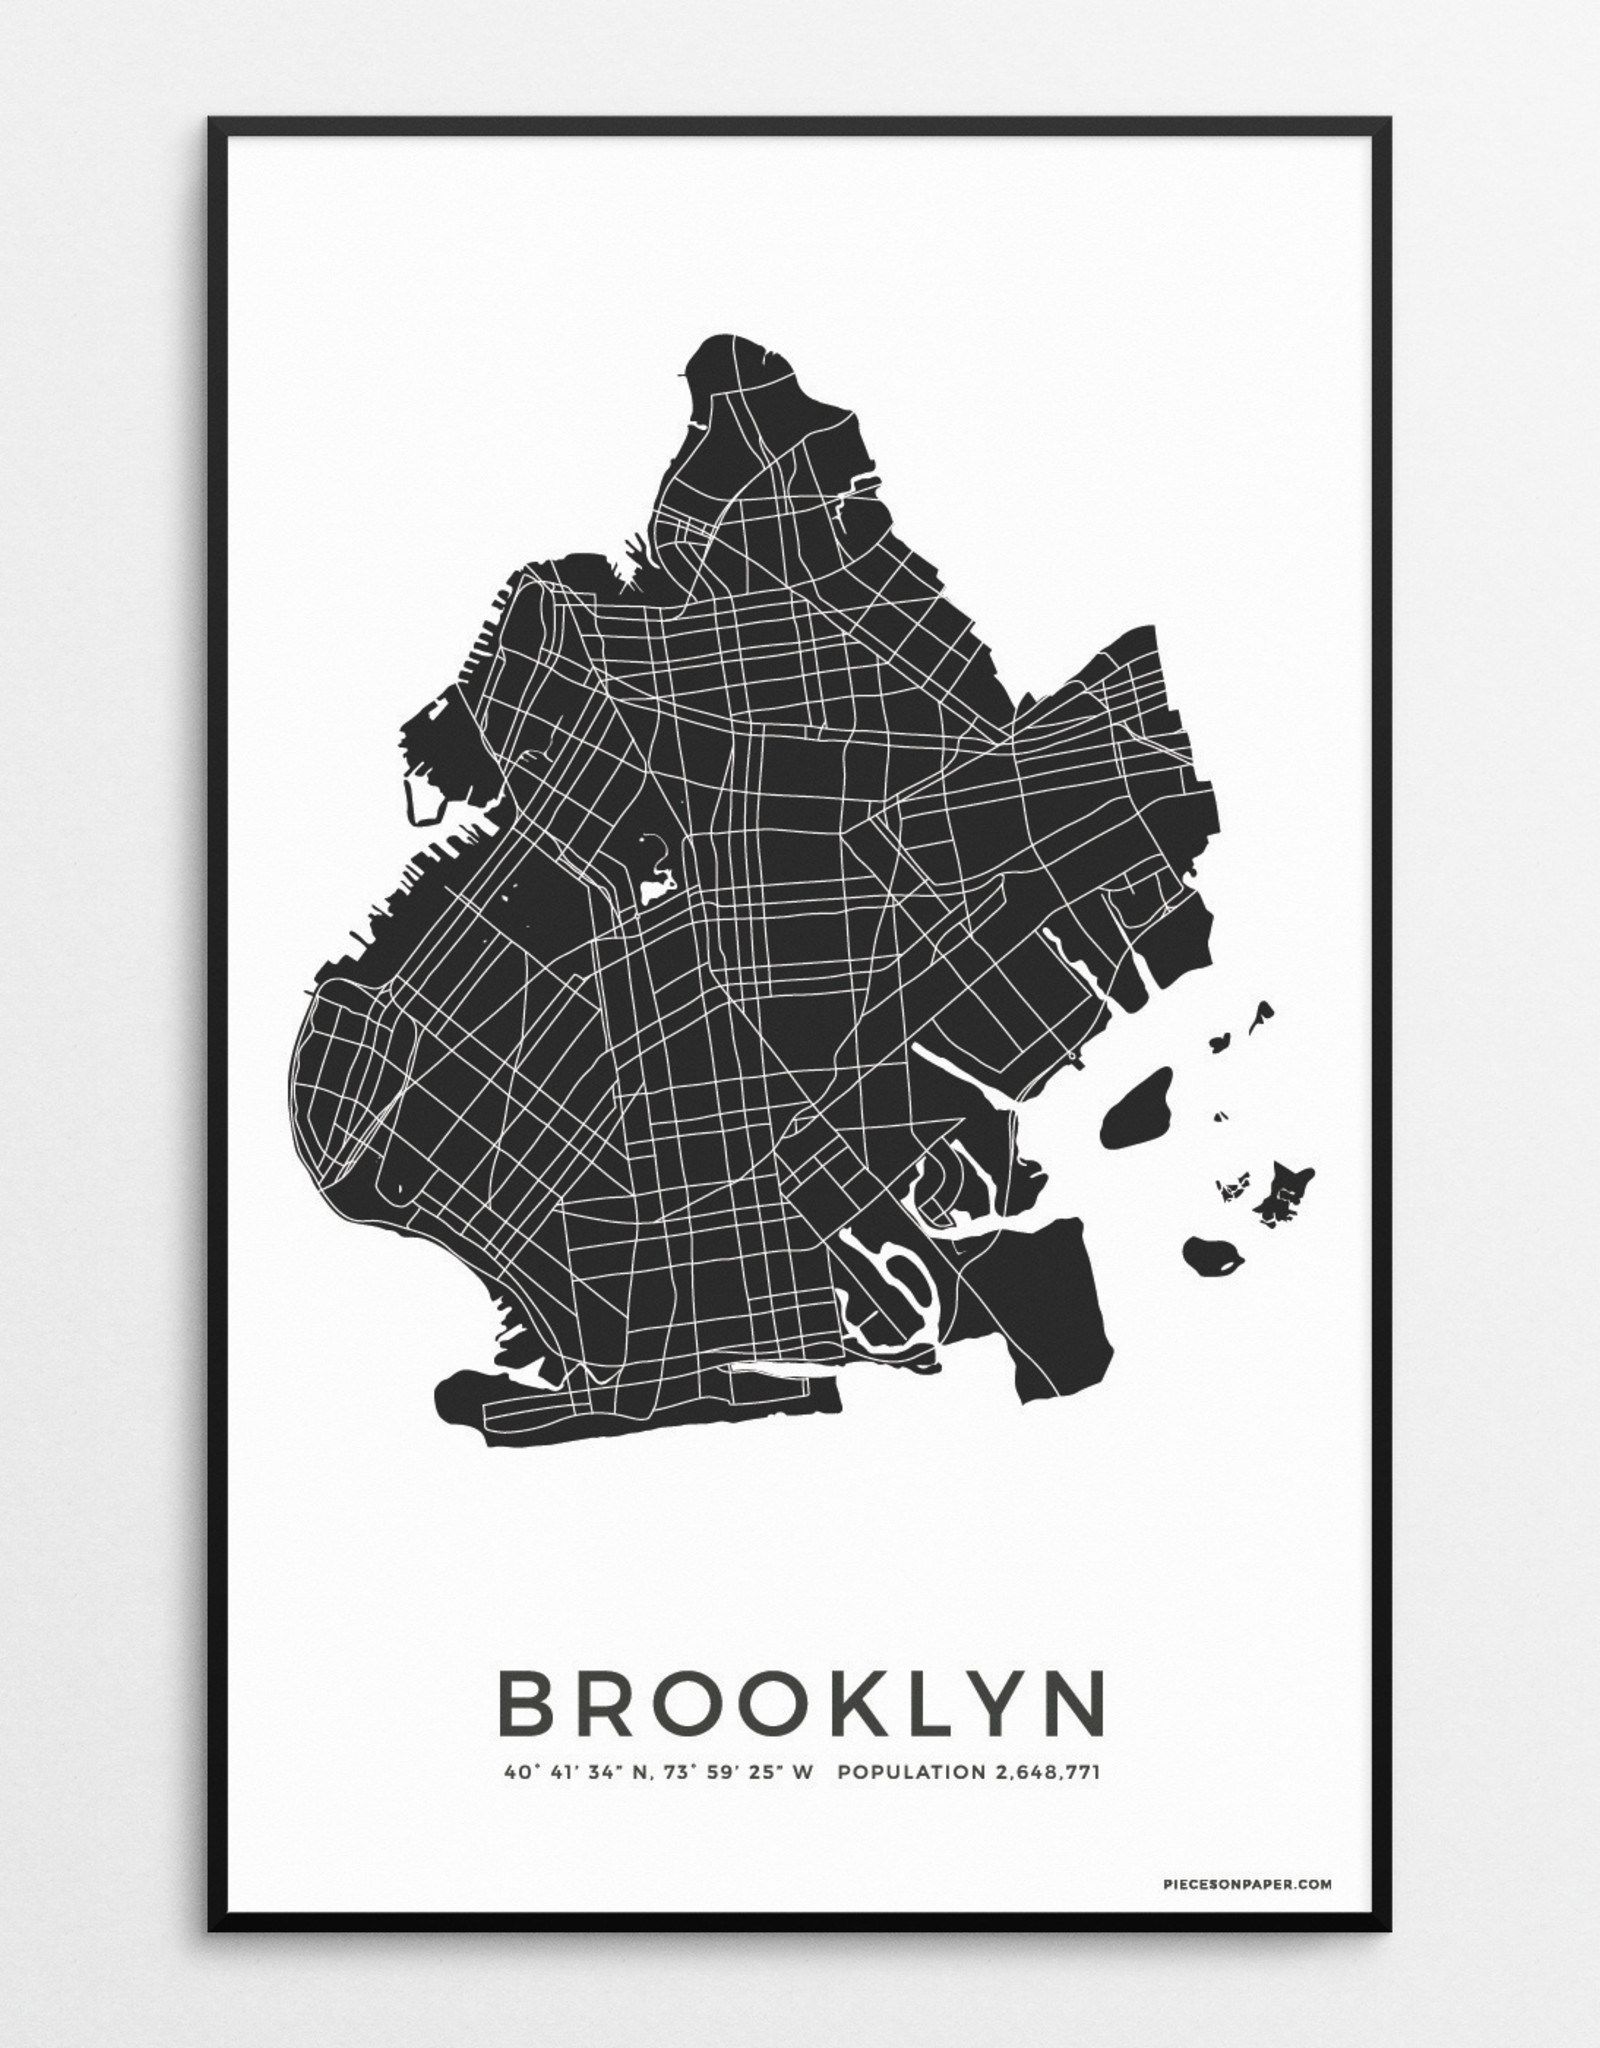 Pieces on Paper Brooklyn Print Black and White